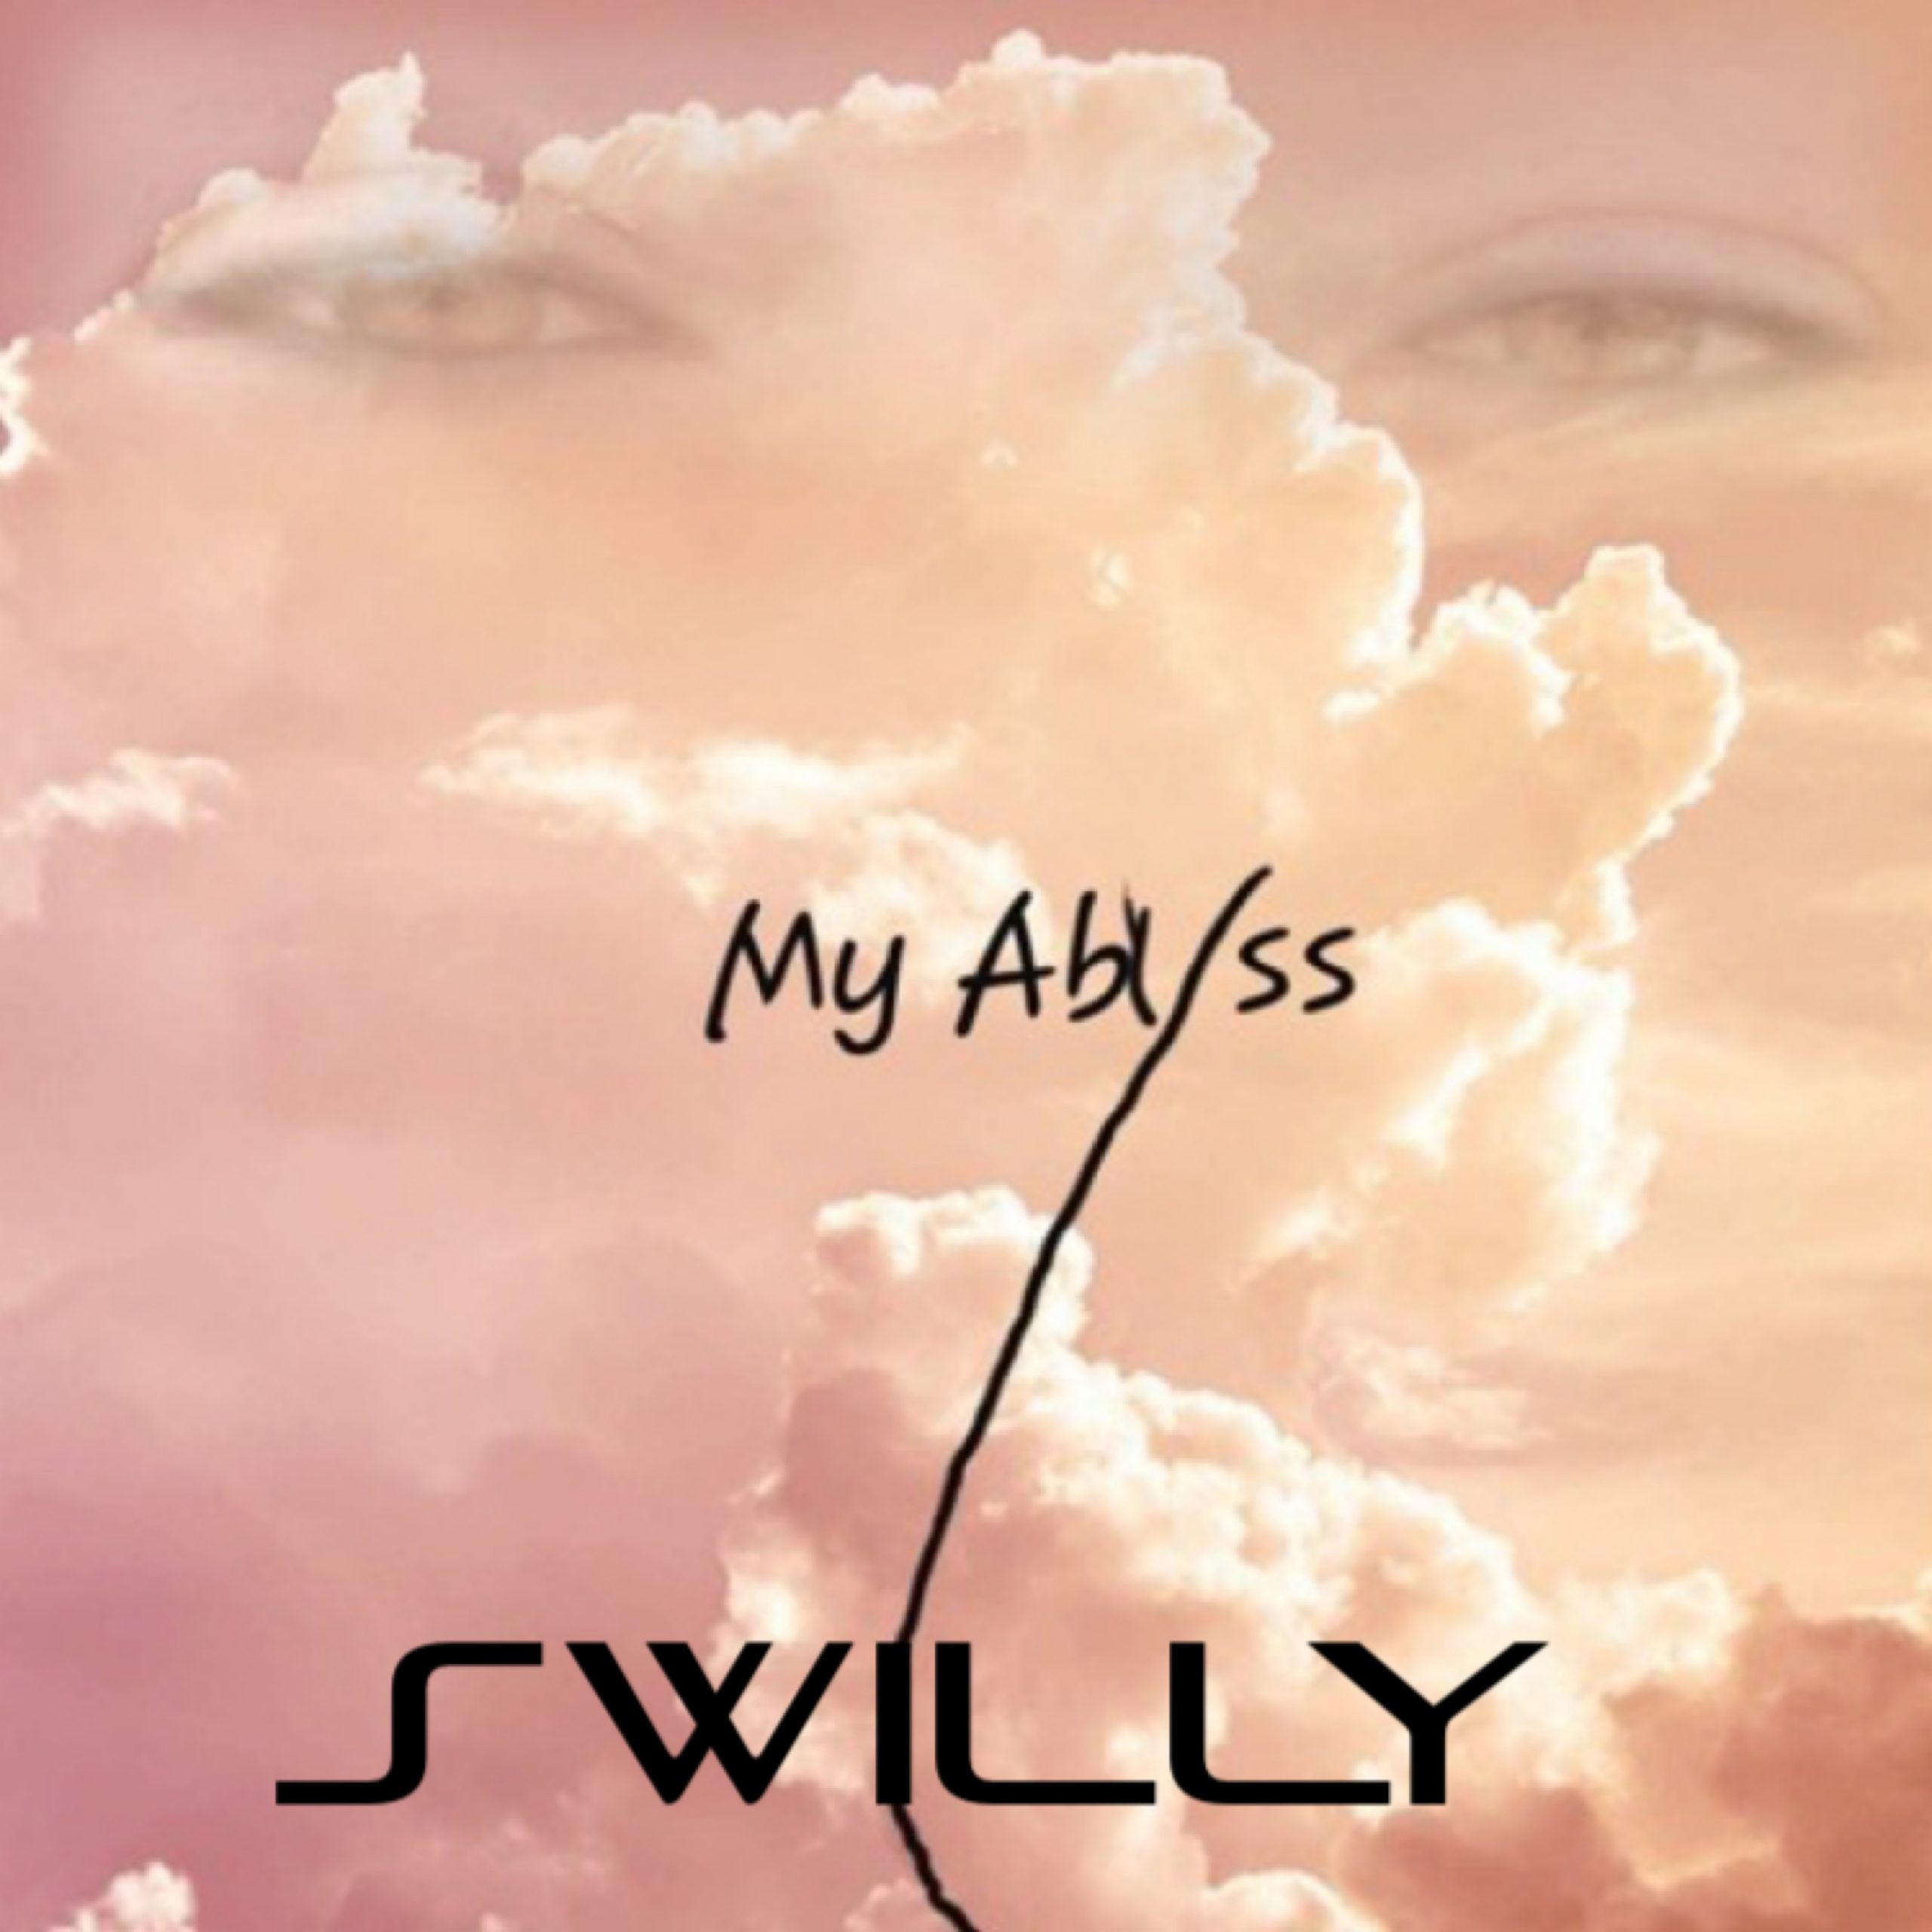 swilly music